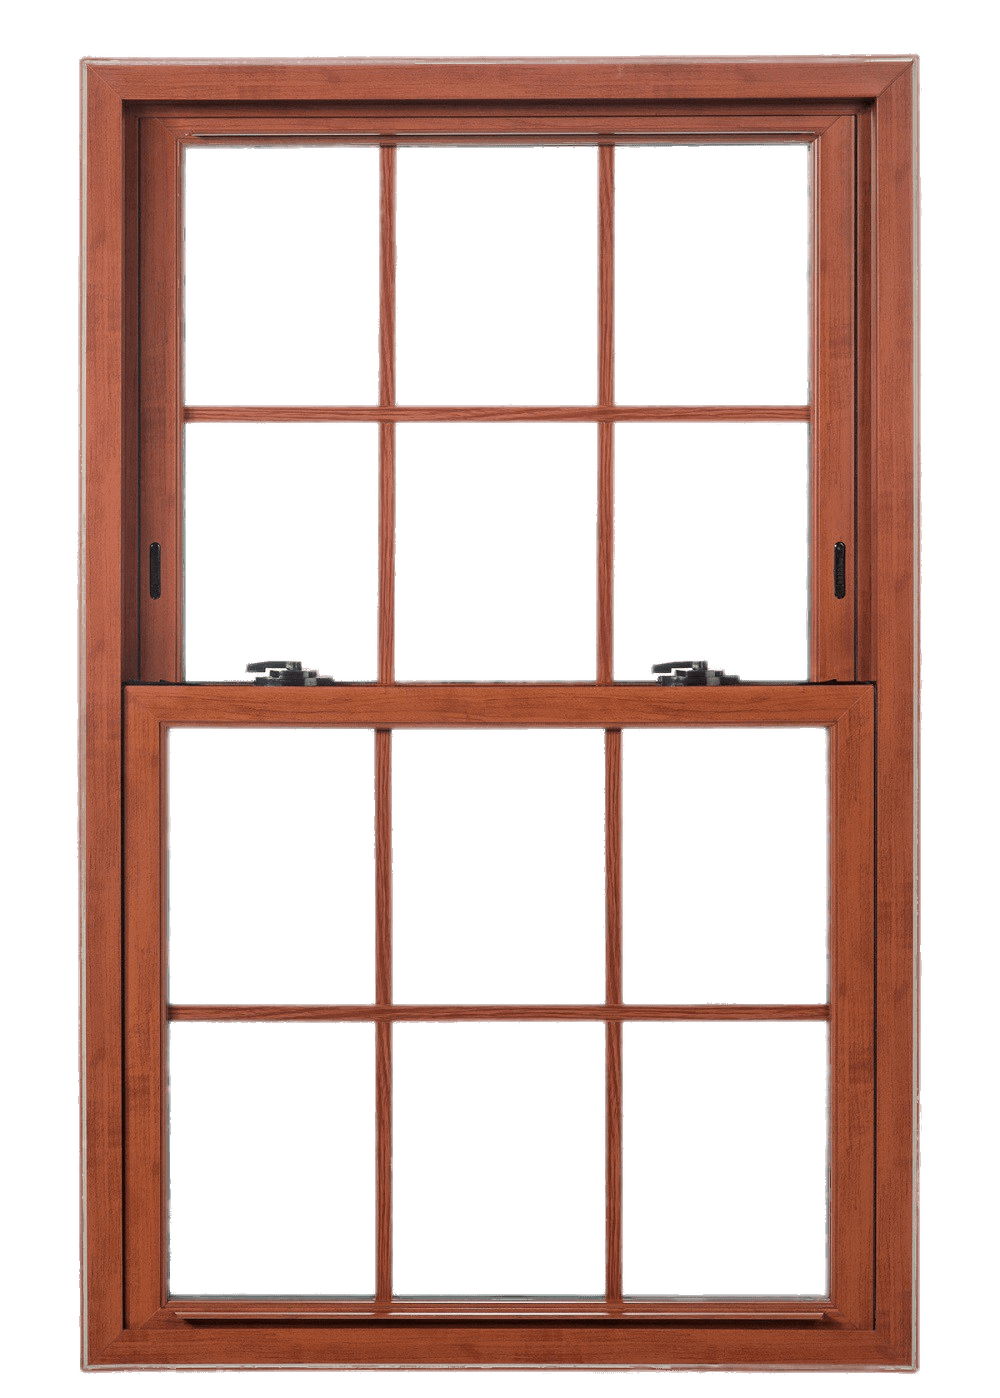 Double Hung Wooden Sash Window transparent PNG.